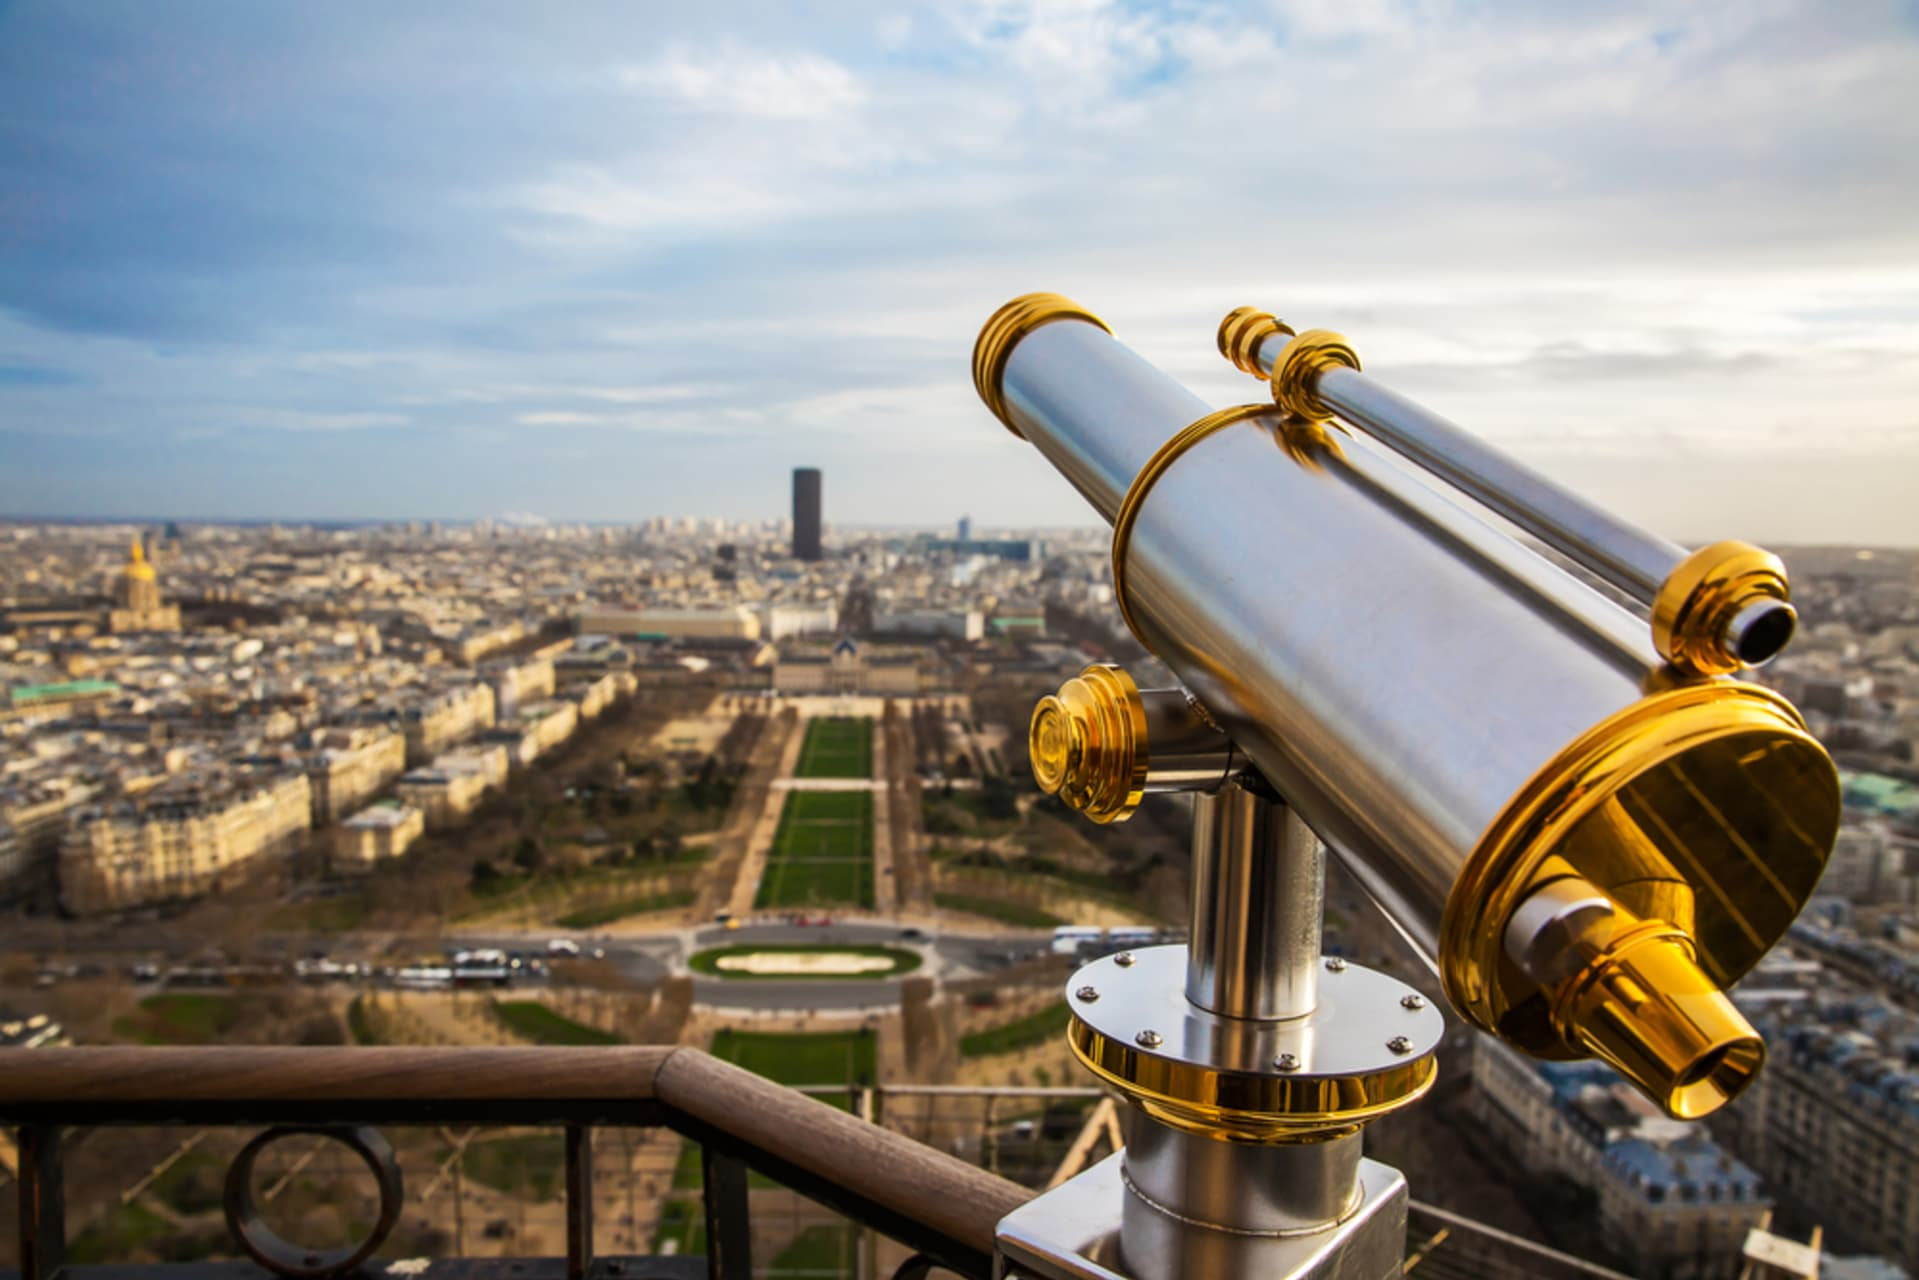 Paris - Eiffer Tower: To the Top